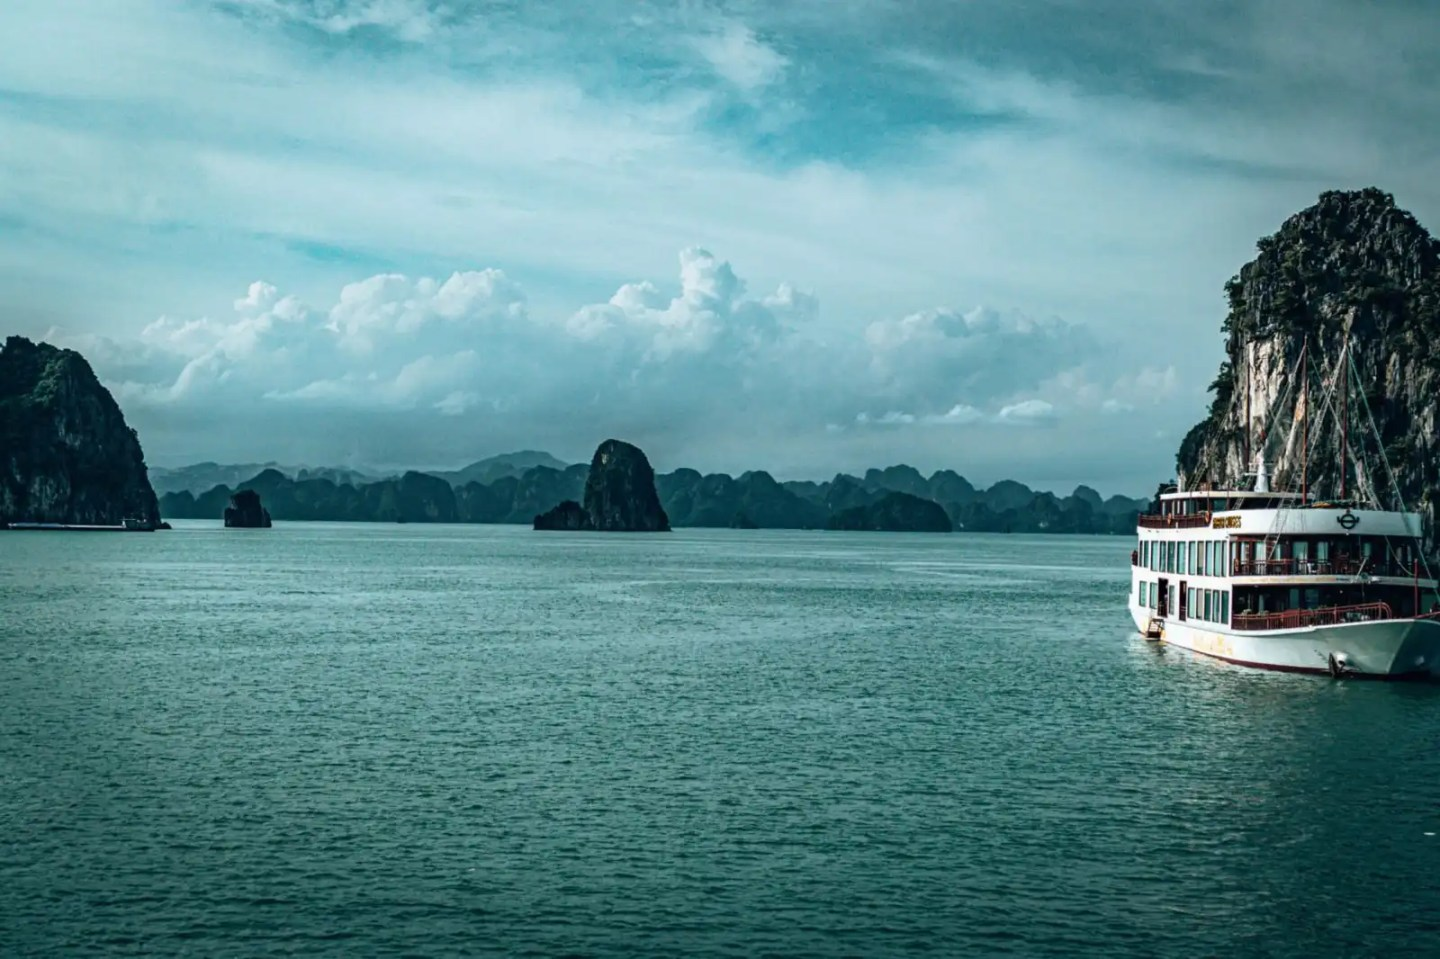 Bai Tu Long Bay tour incredible scenery with another cruise boat